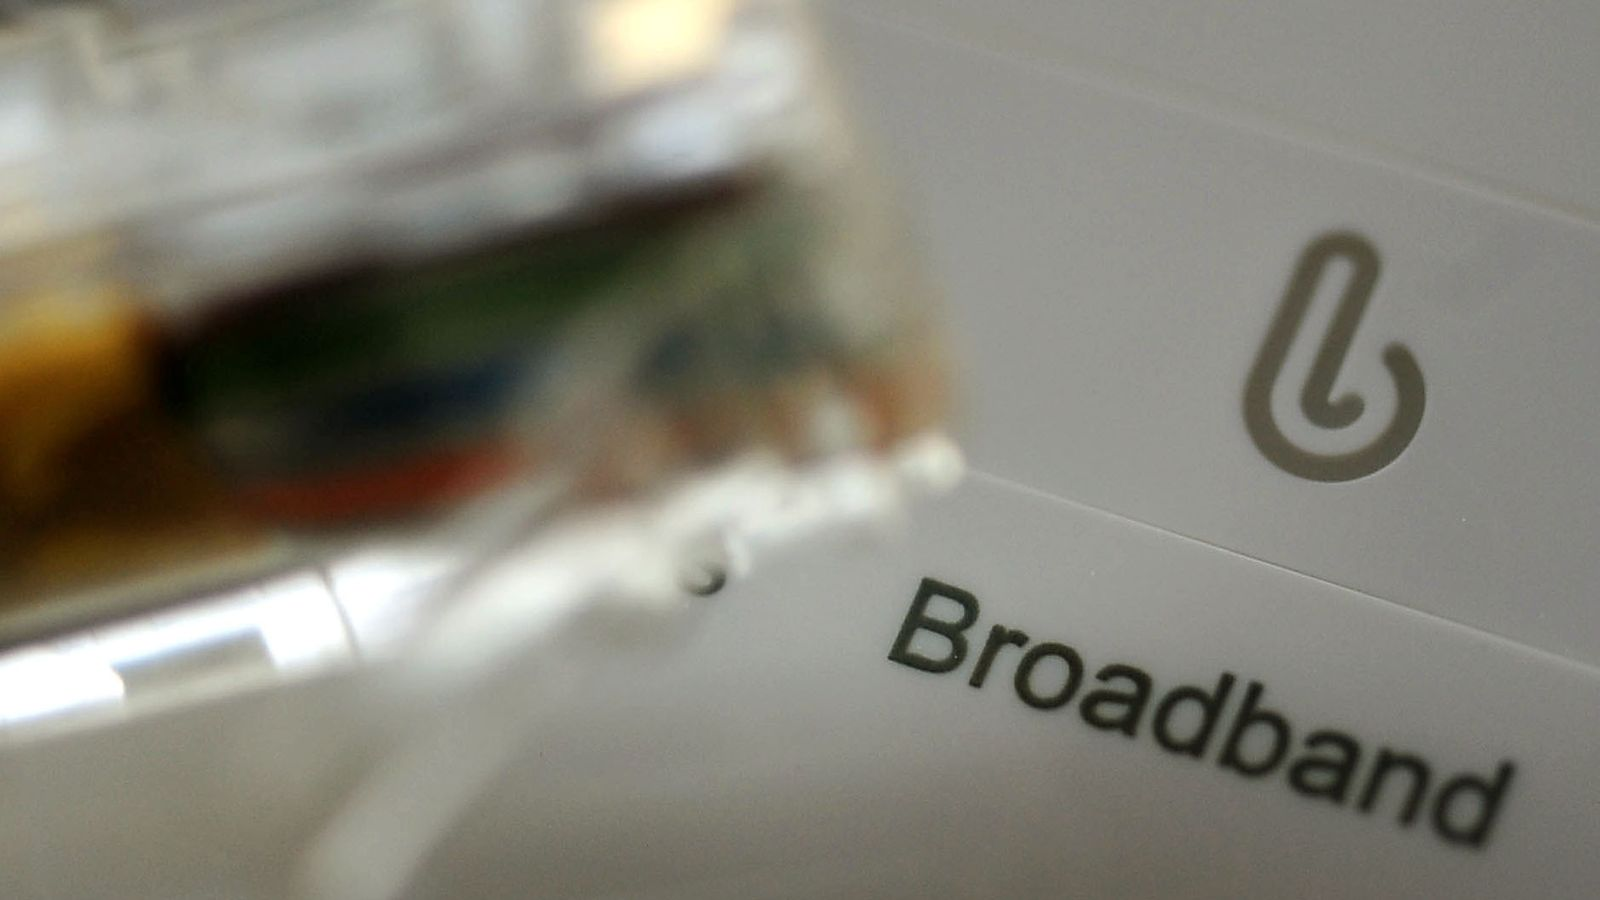 Project Gigabit: Government to upgrade internet speed for 1.85 million premises